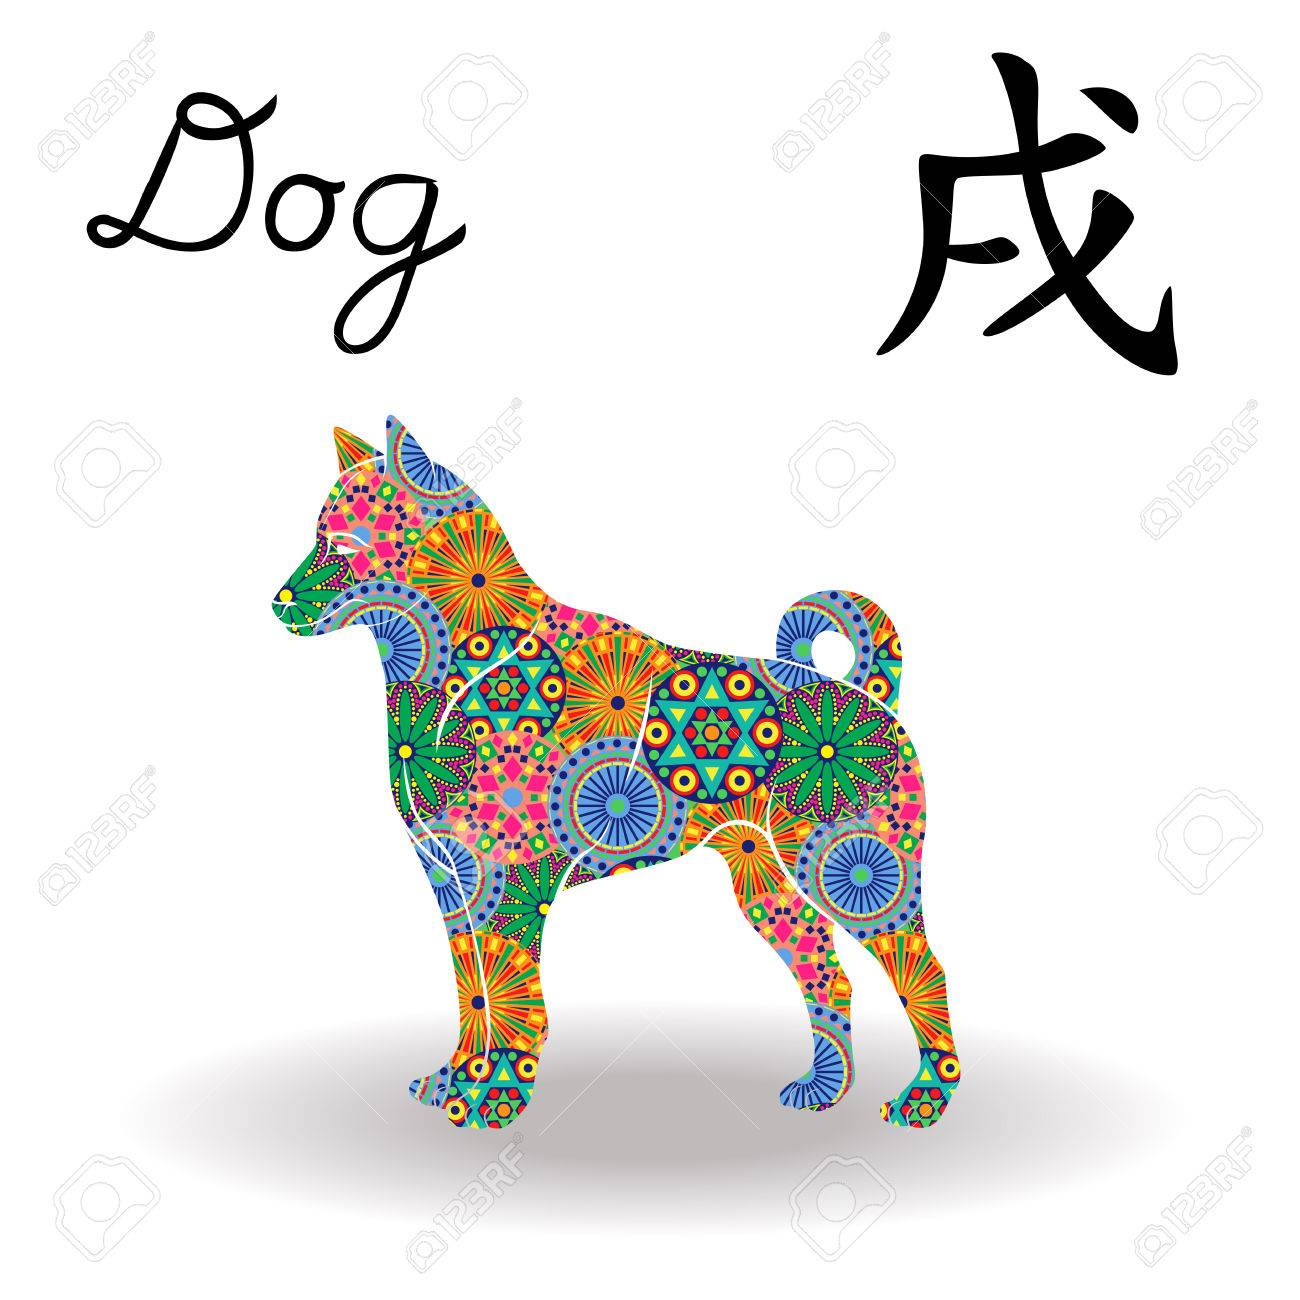 Chinese Zodiac Sign Dog, Fixed Element Earth, Symbol Of New Year On The  Eastern Calendar, Hand Drawn Vector Stencil With Color Geometric Flowers